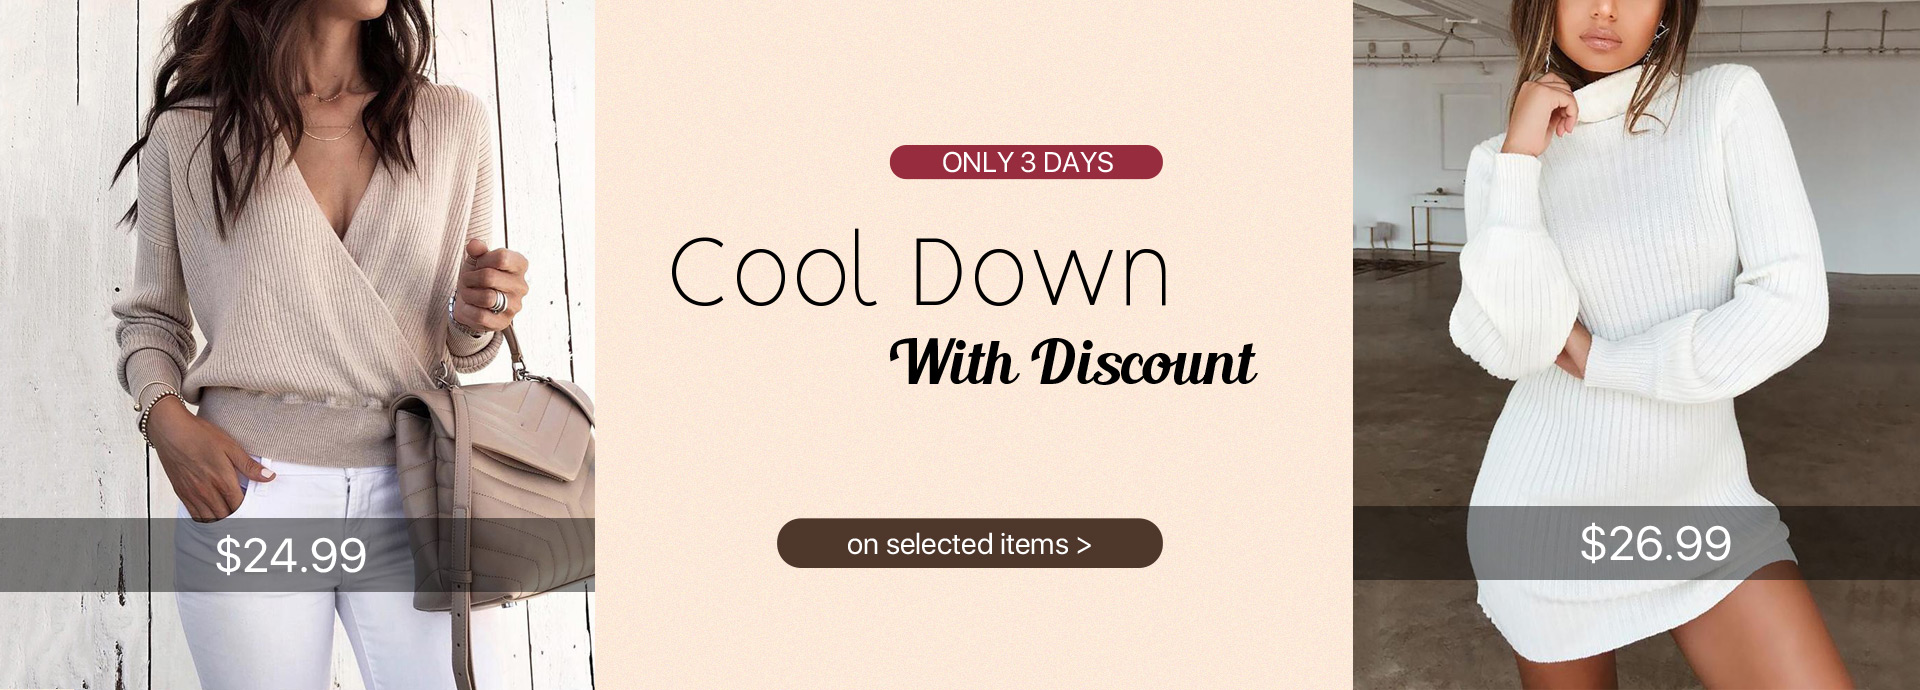 Cool Down With Discount